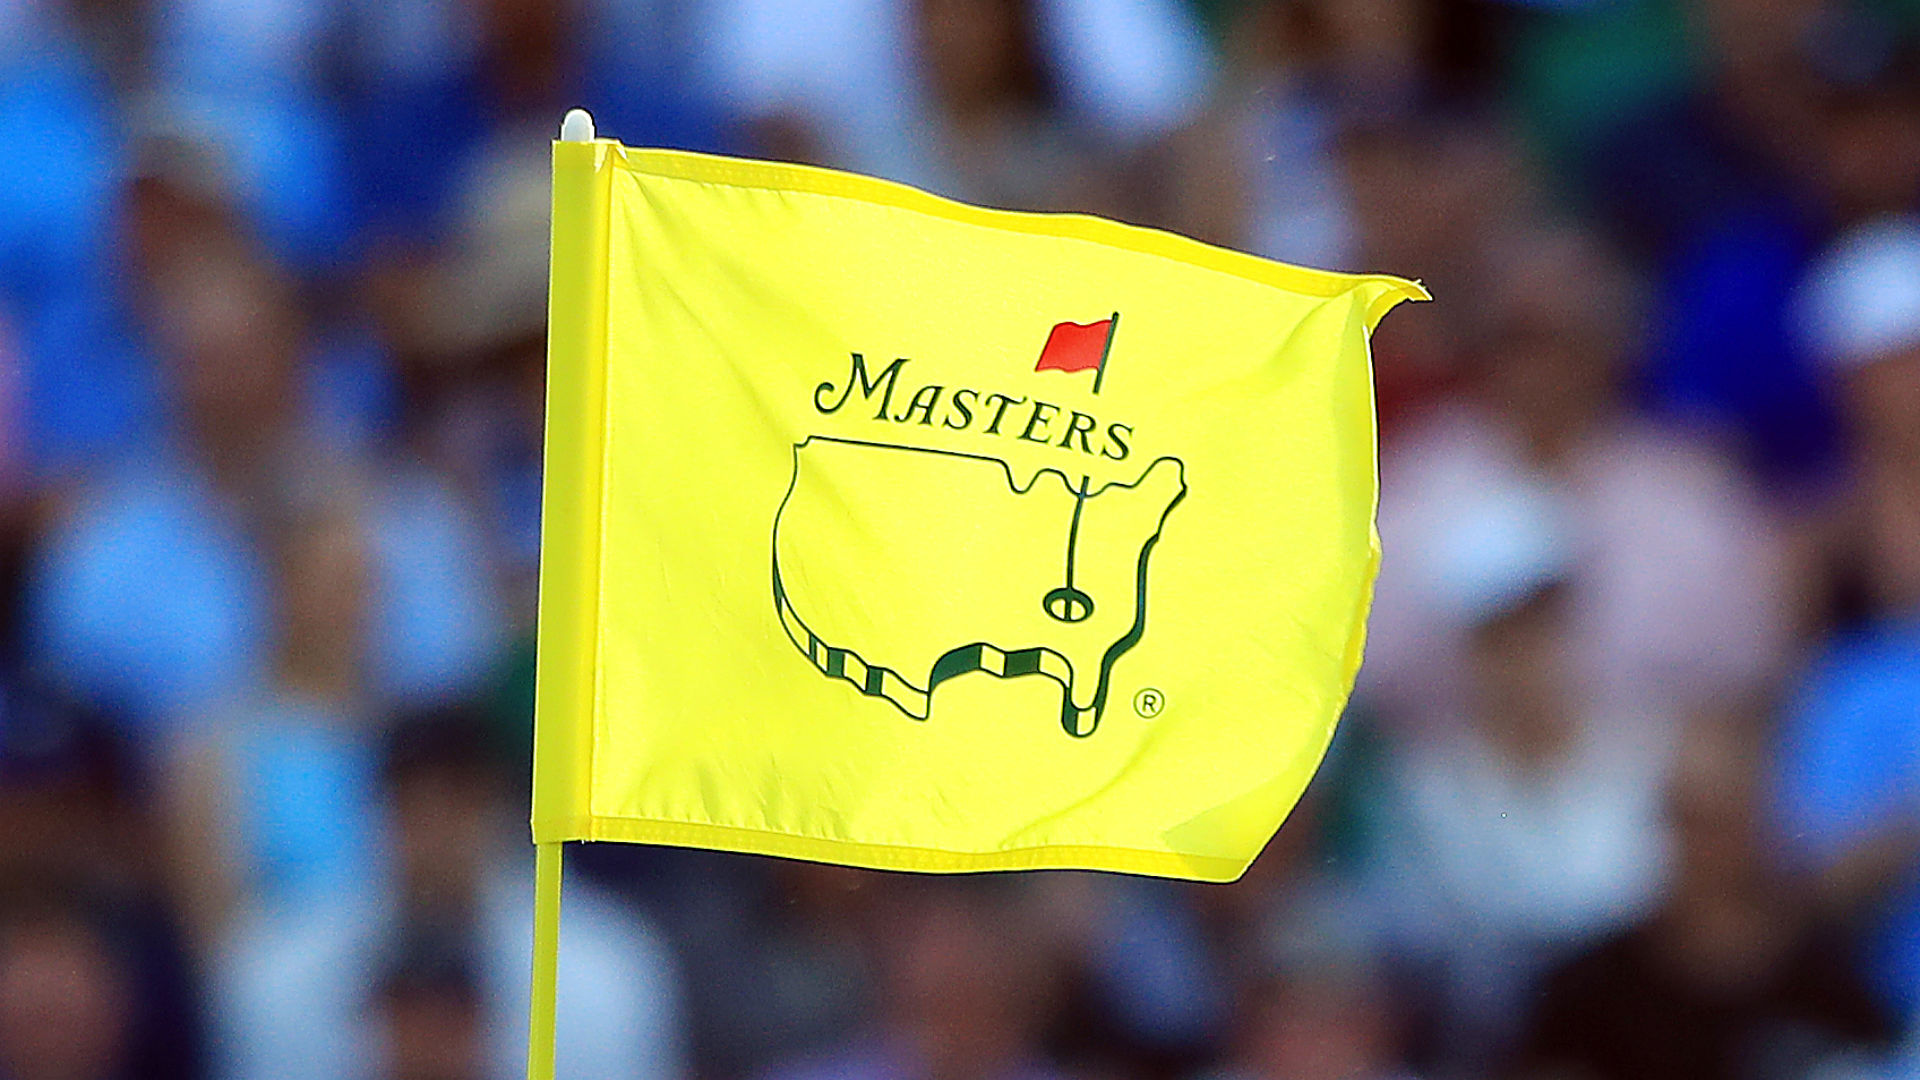 Masters postponed as golf continues to take coronavirus action